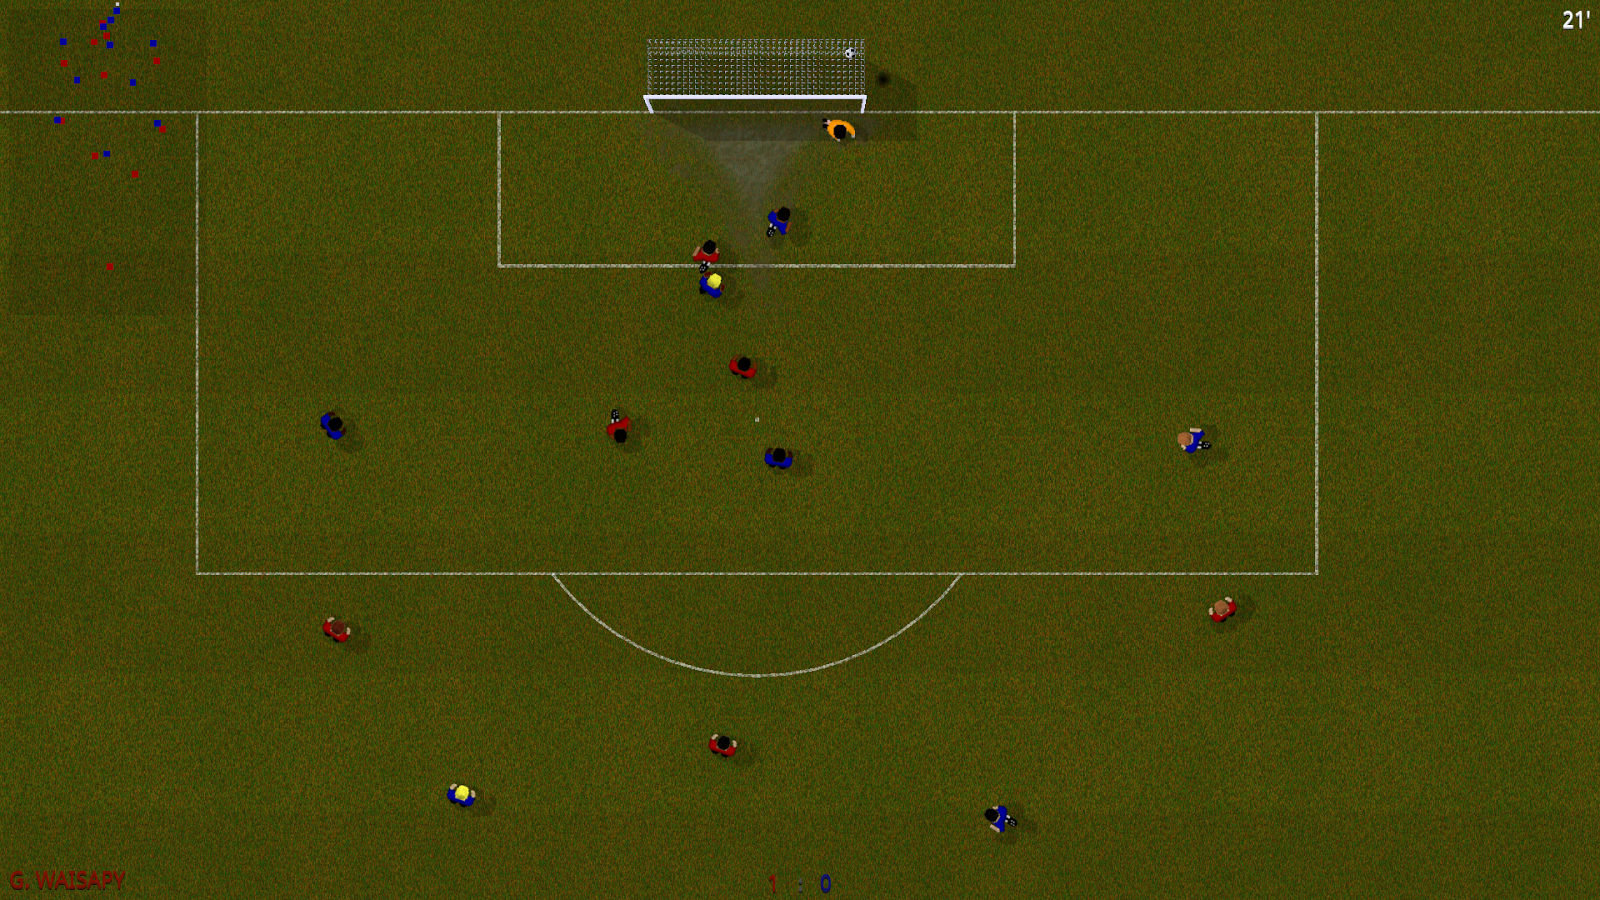 Natural Soccer ⚽ Fun Arcade Football Game- screenshot